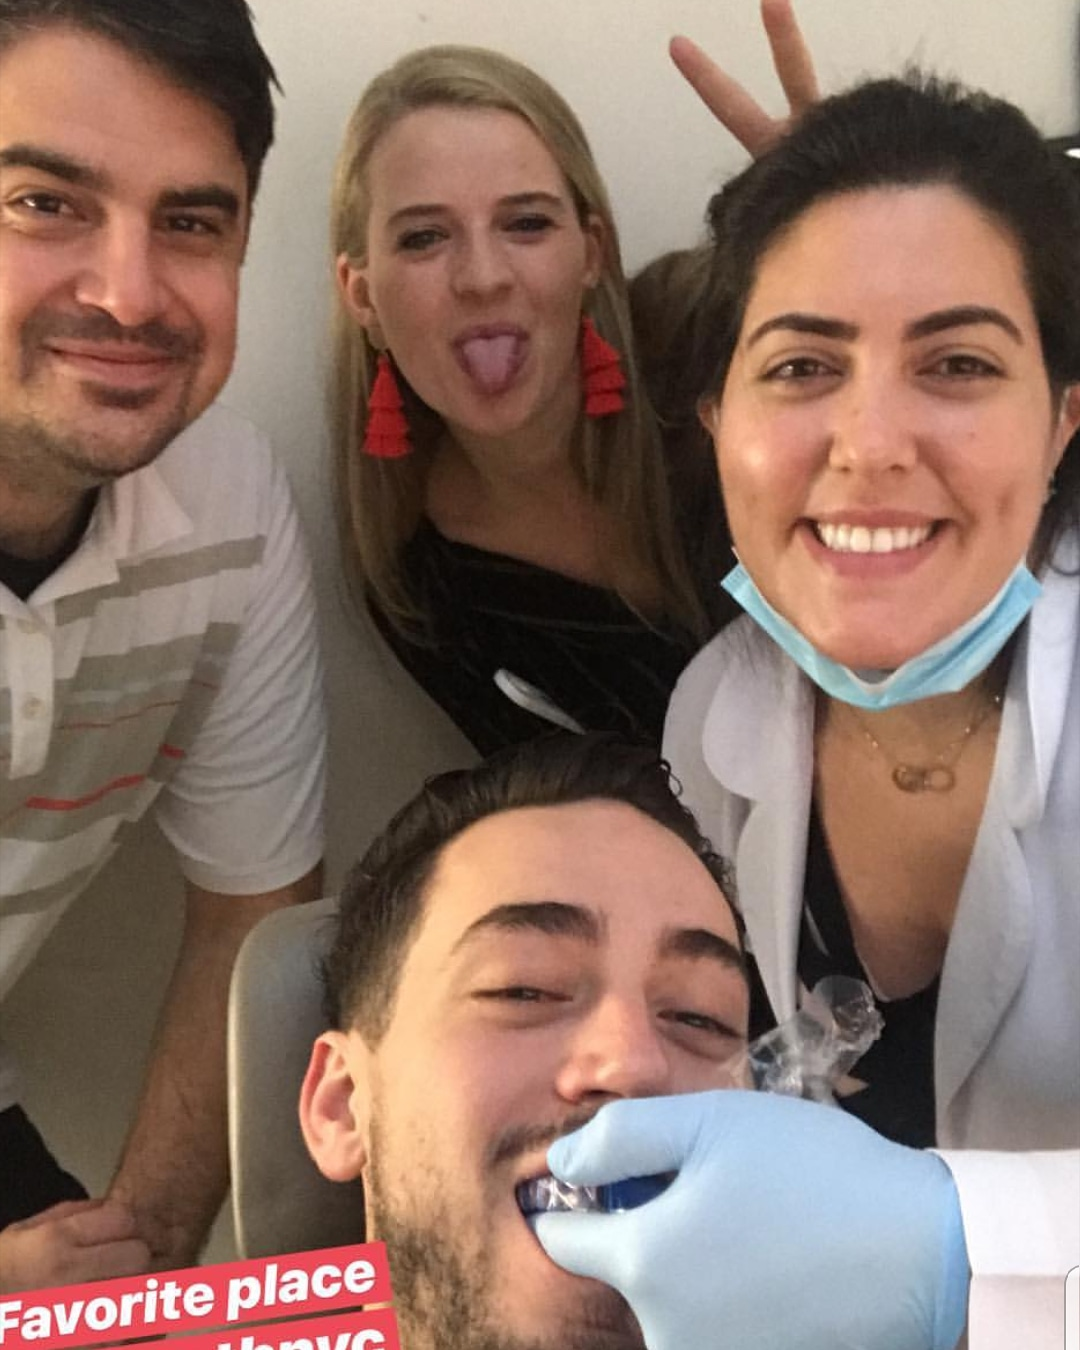 Celebrating the finale of one INVISALIGN smile success as we begin another at LaTooth NYC